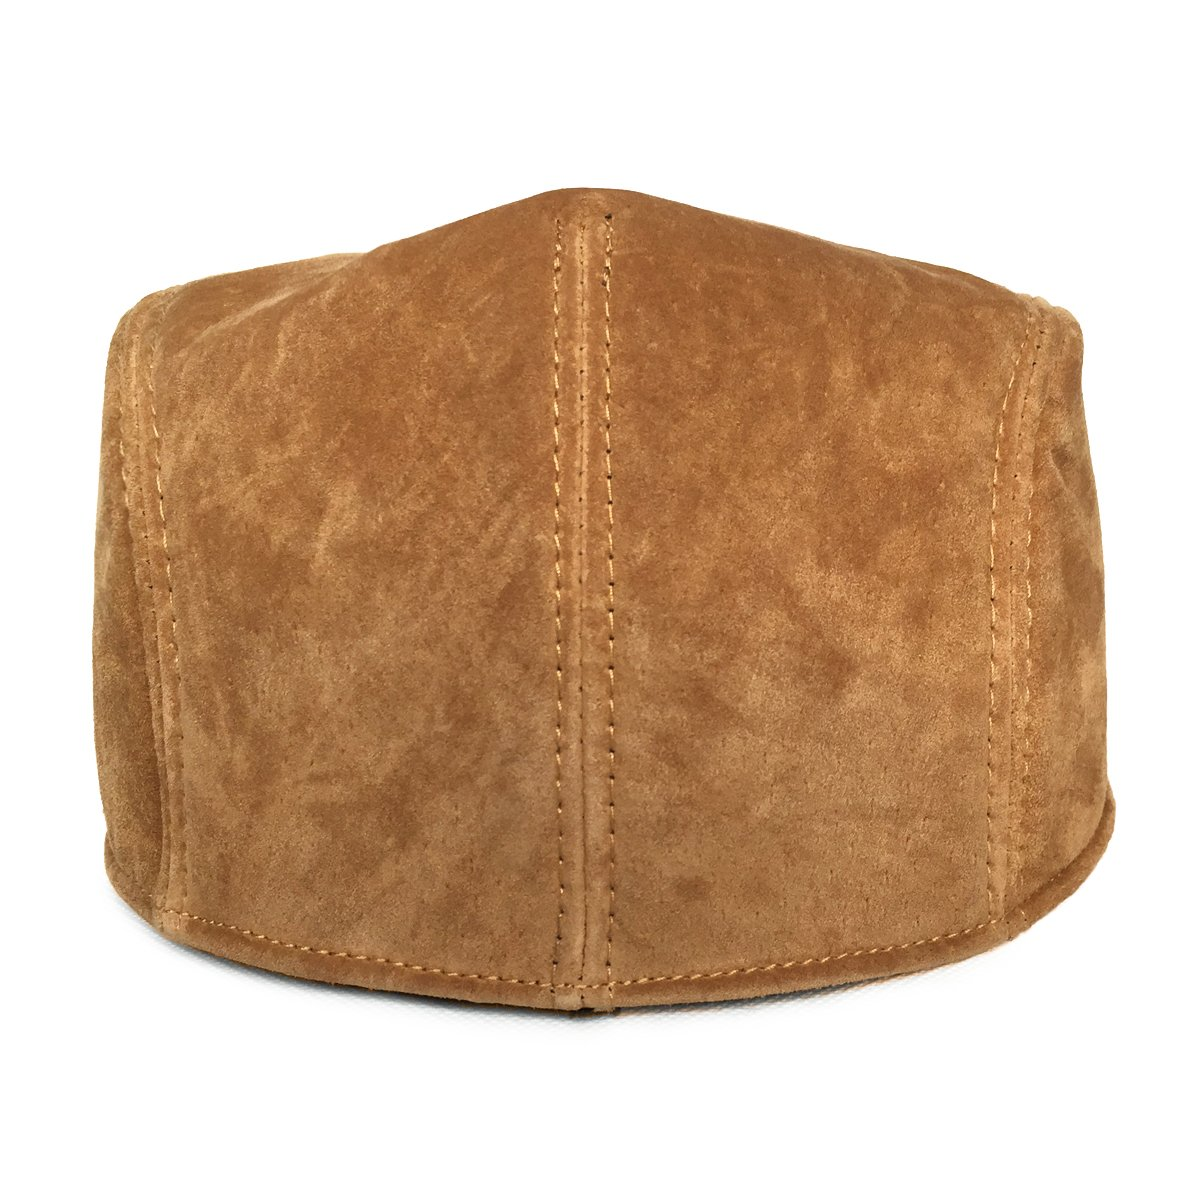 LETHMIK Classic Newsboy Flat Hat Genuine Leather Cabbie Hat Ivy Cap Driving 3